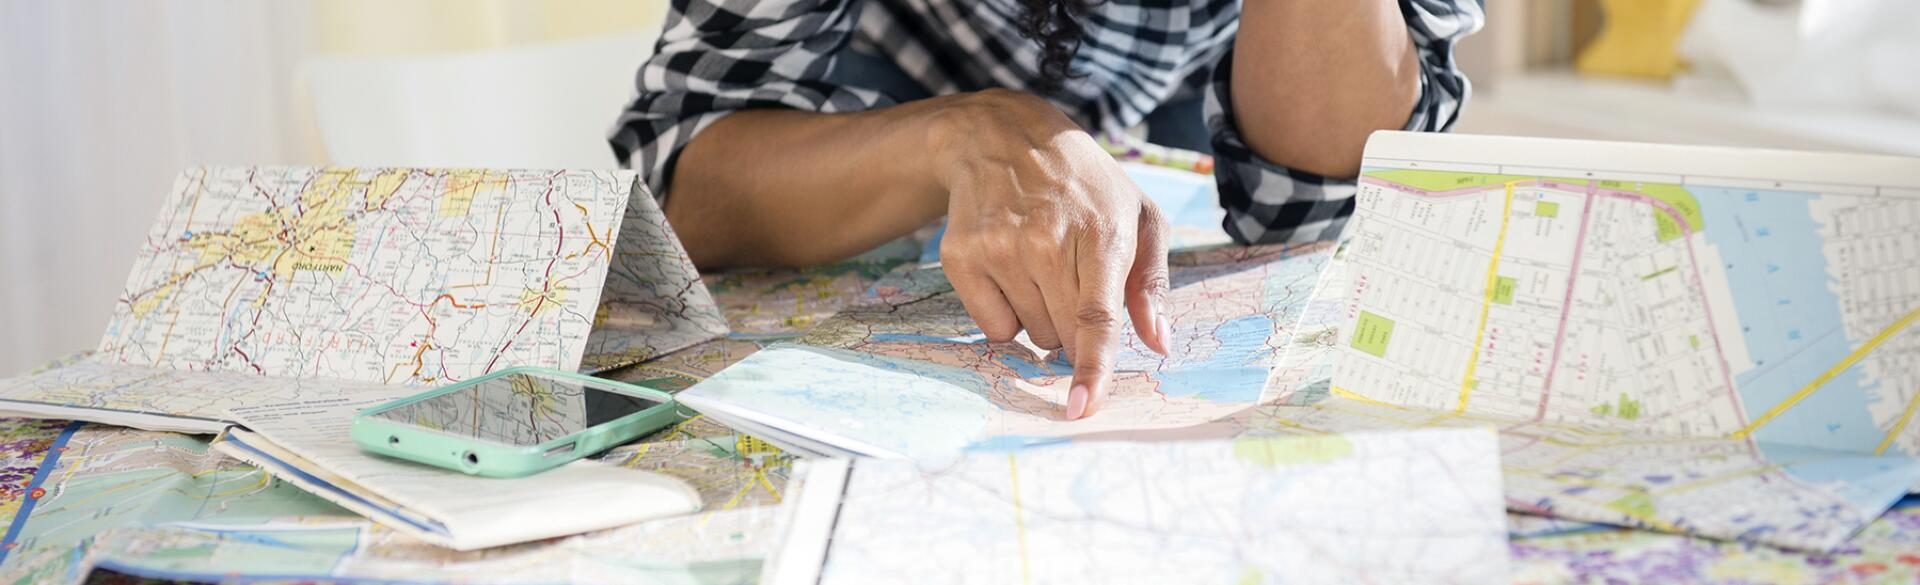 woman_looking_at_map_on_table_GettyImages-557475331_1800